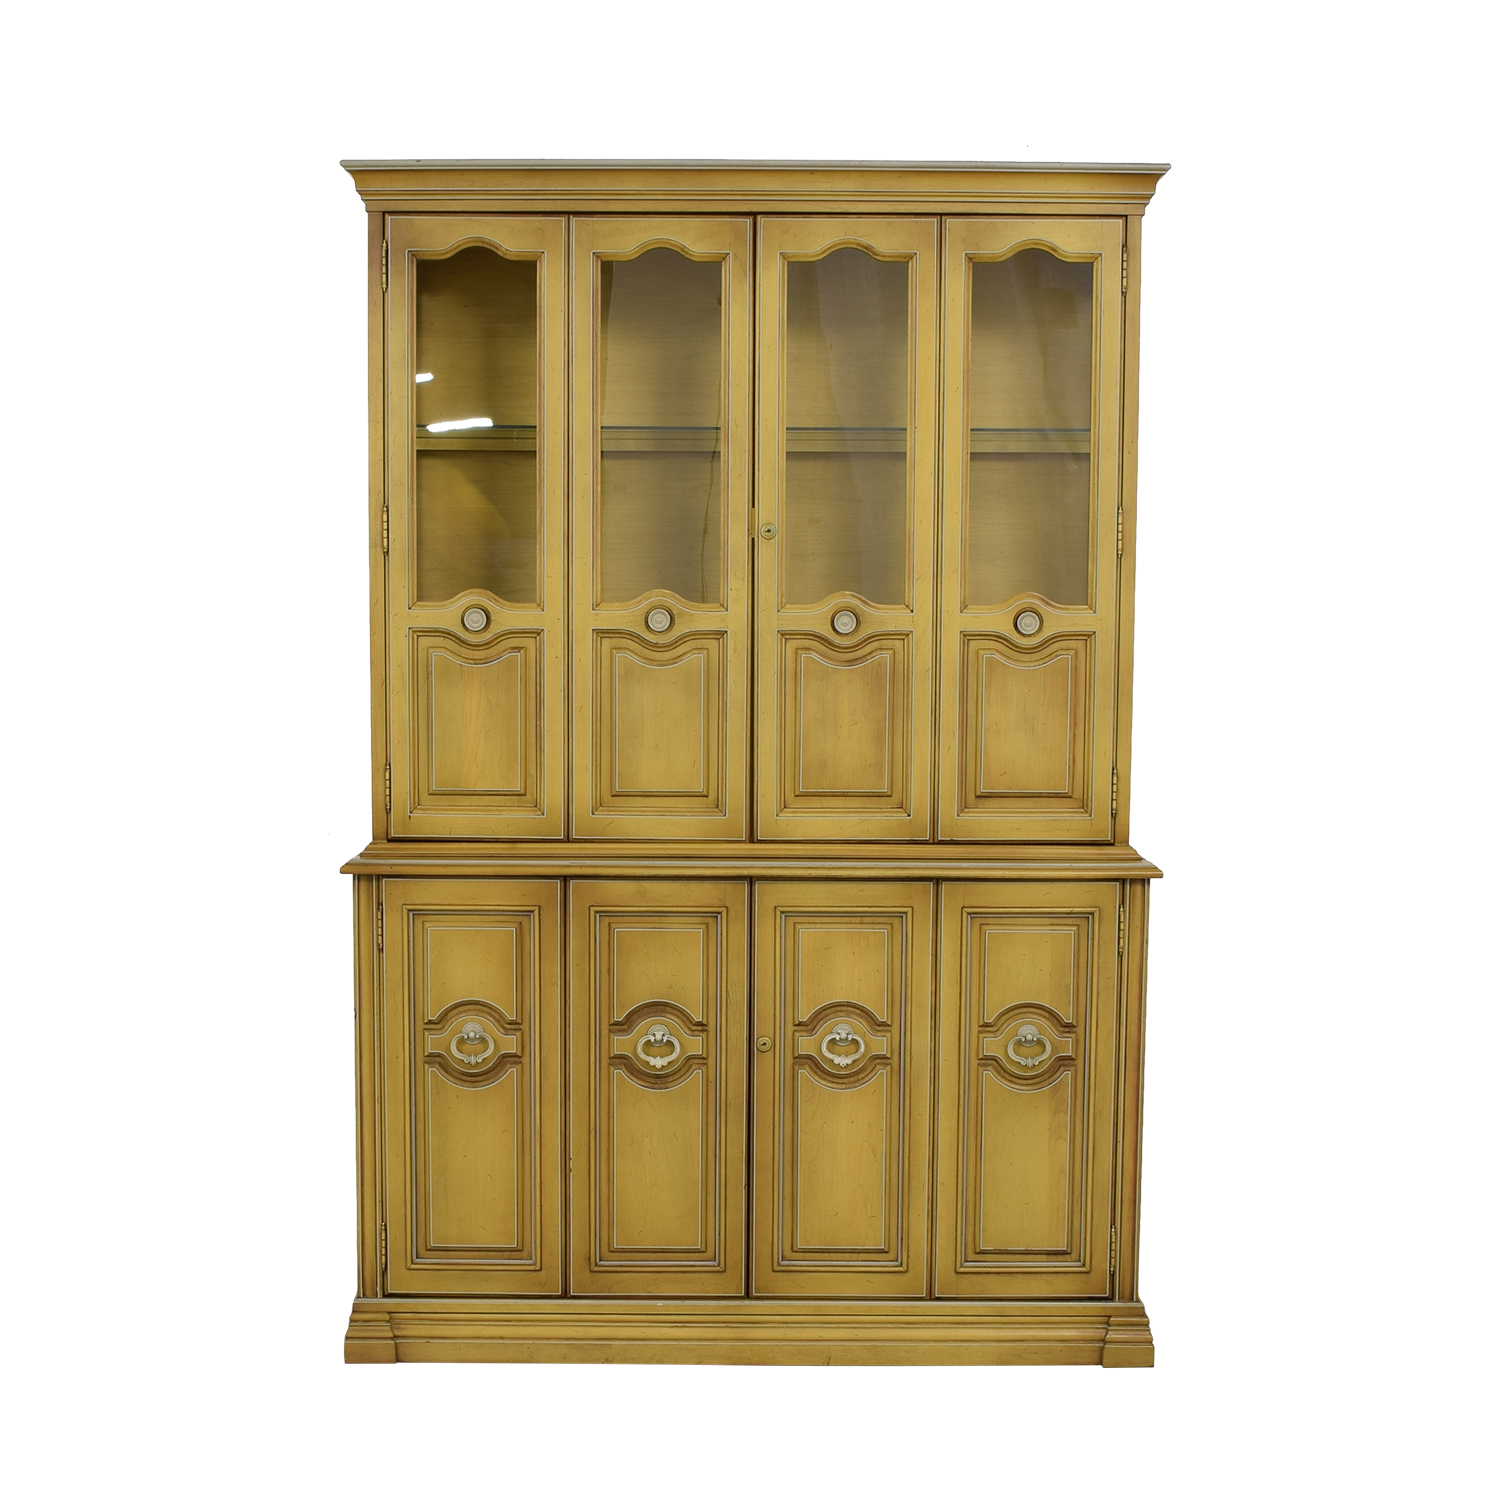 Antique China Cabinet on sale